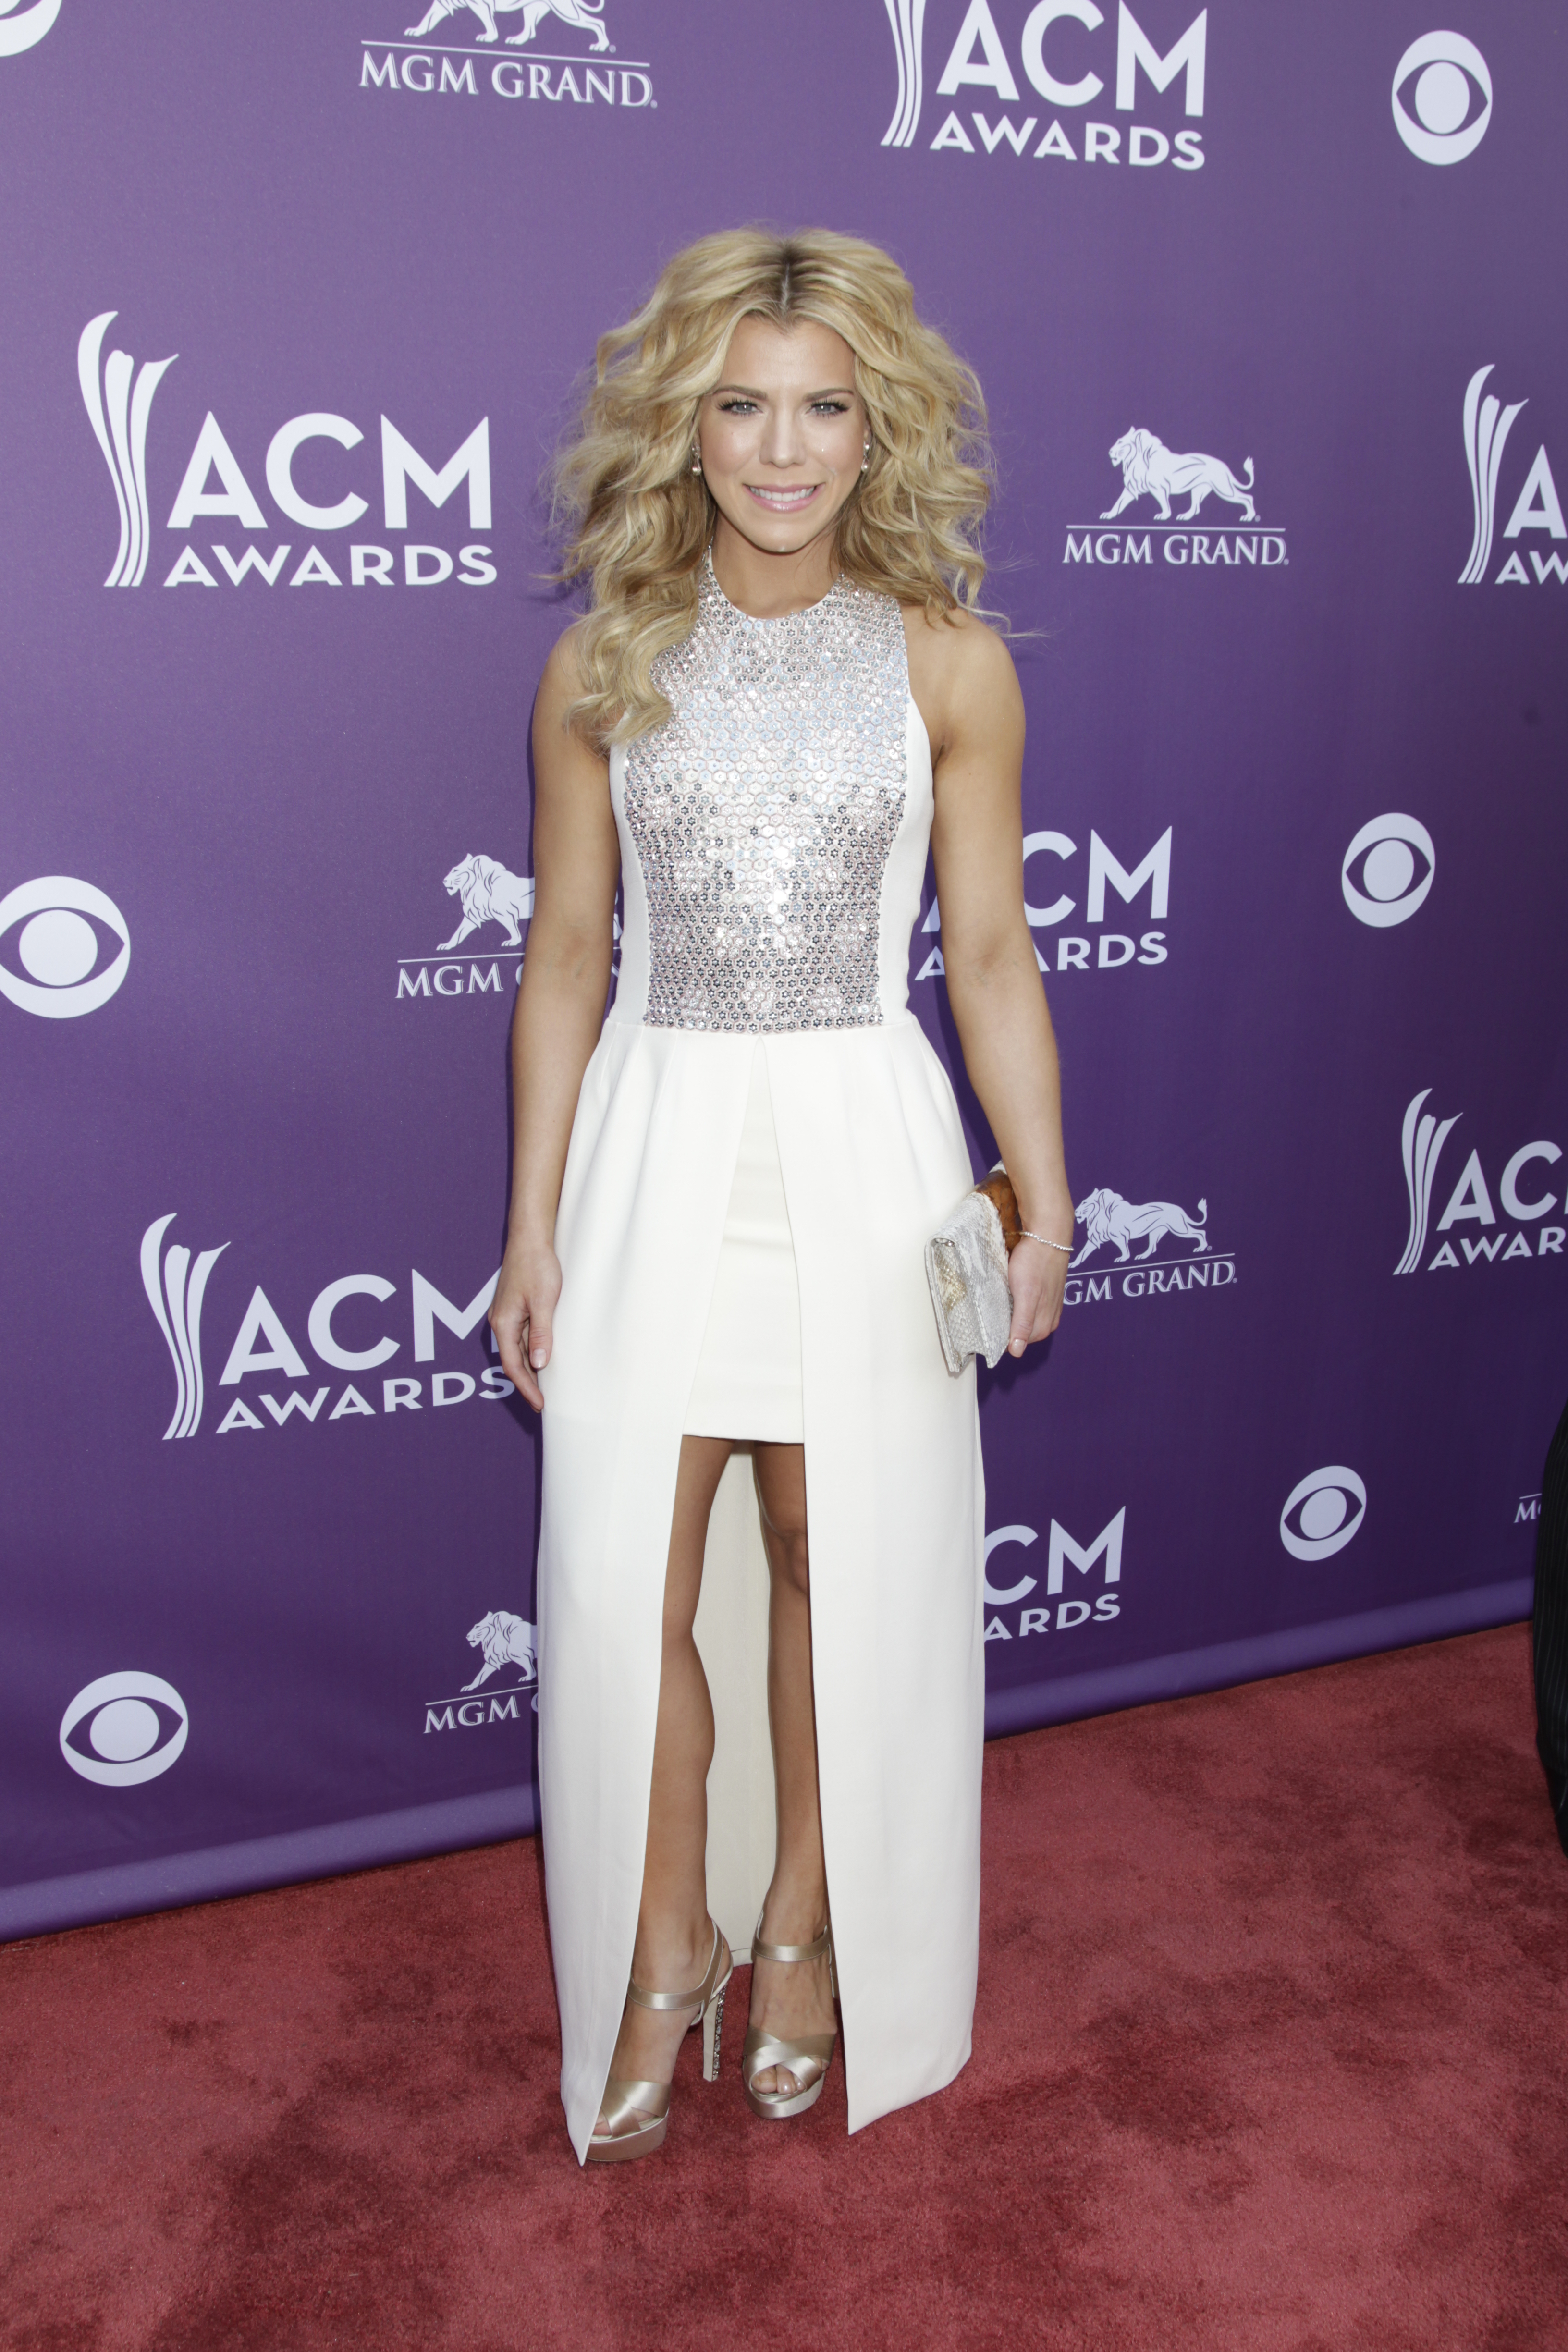 Kimberly Perry on the Red Carpet - 48th ACM Awards